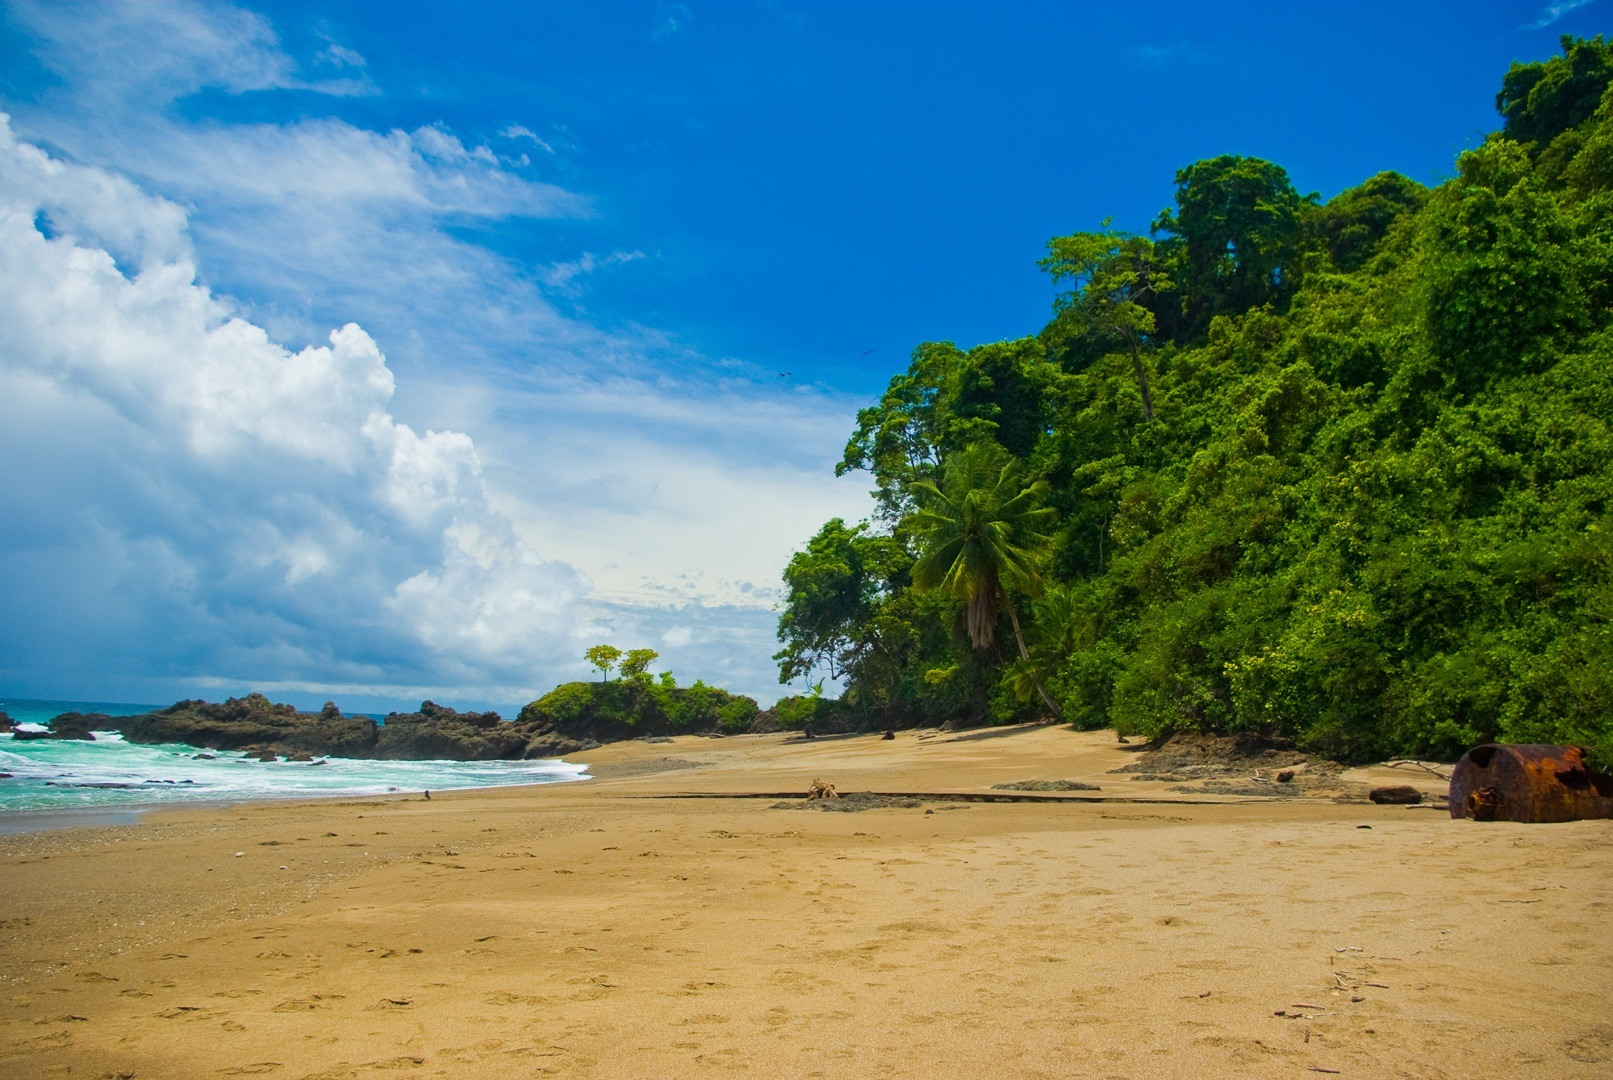 Dominical Beach, Costa Rica - Top 10 Most Breathtaking Beaches In The World